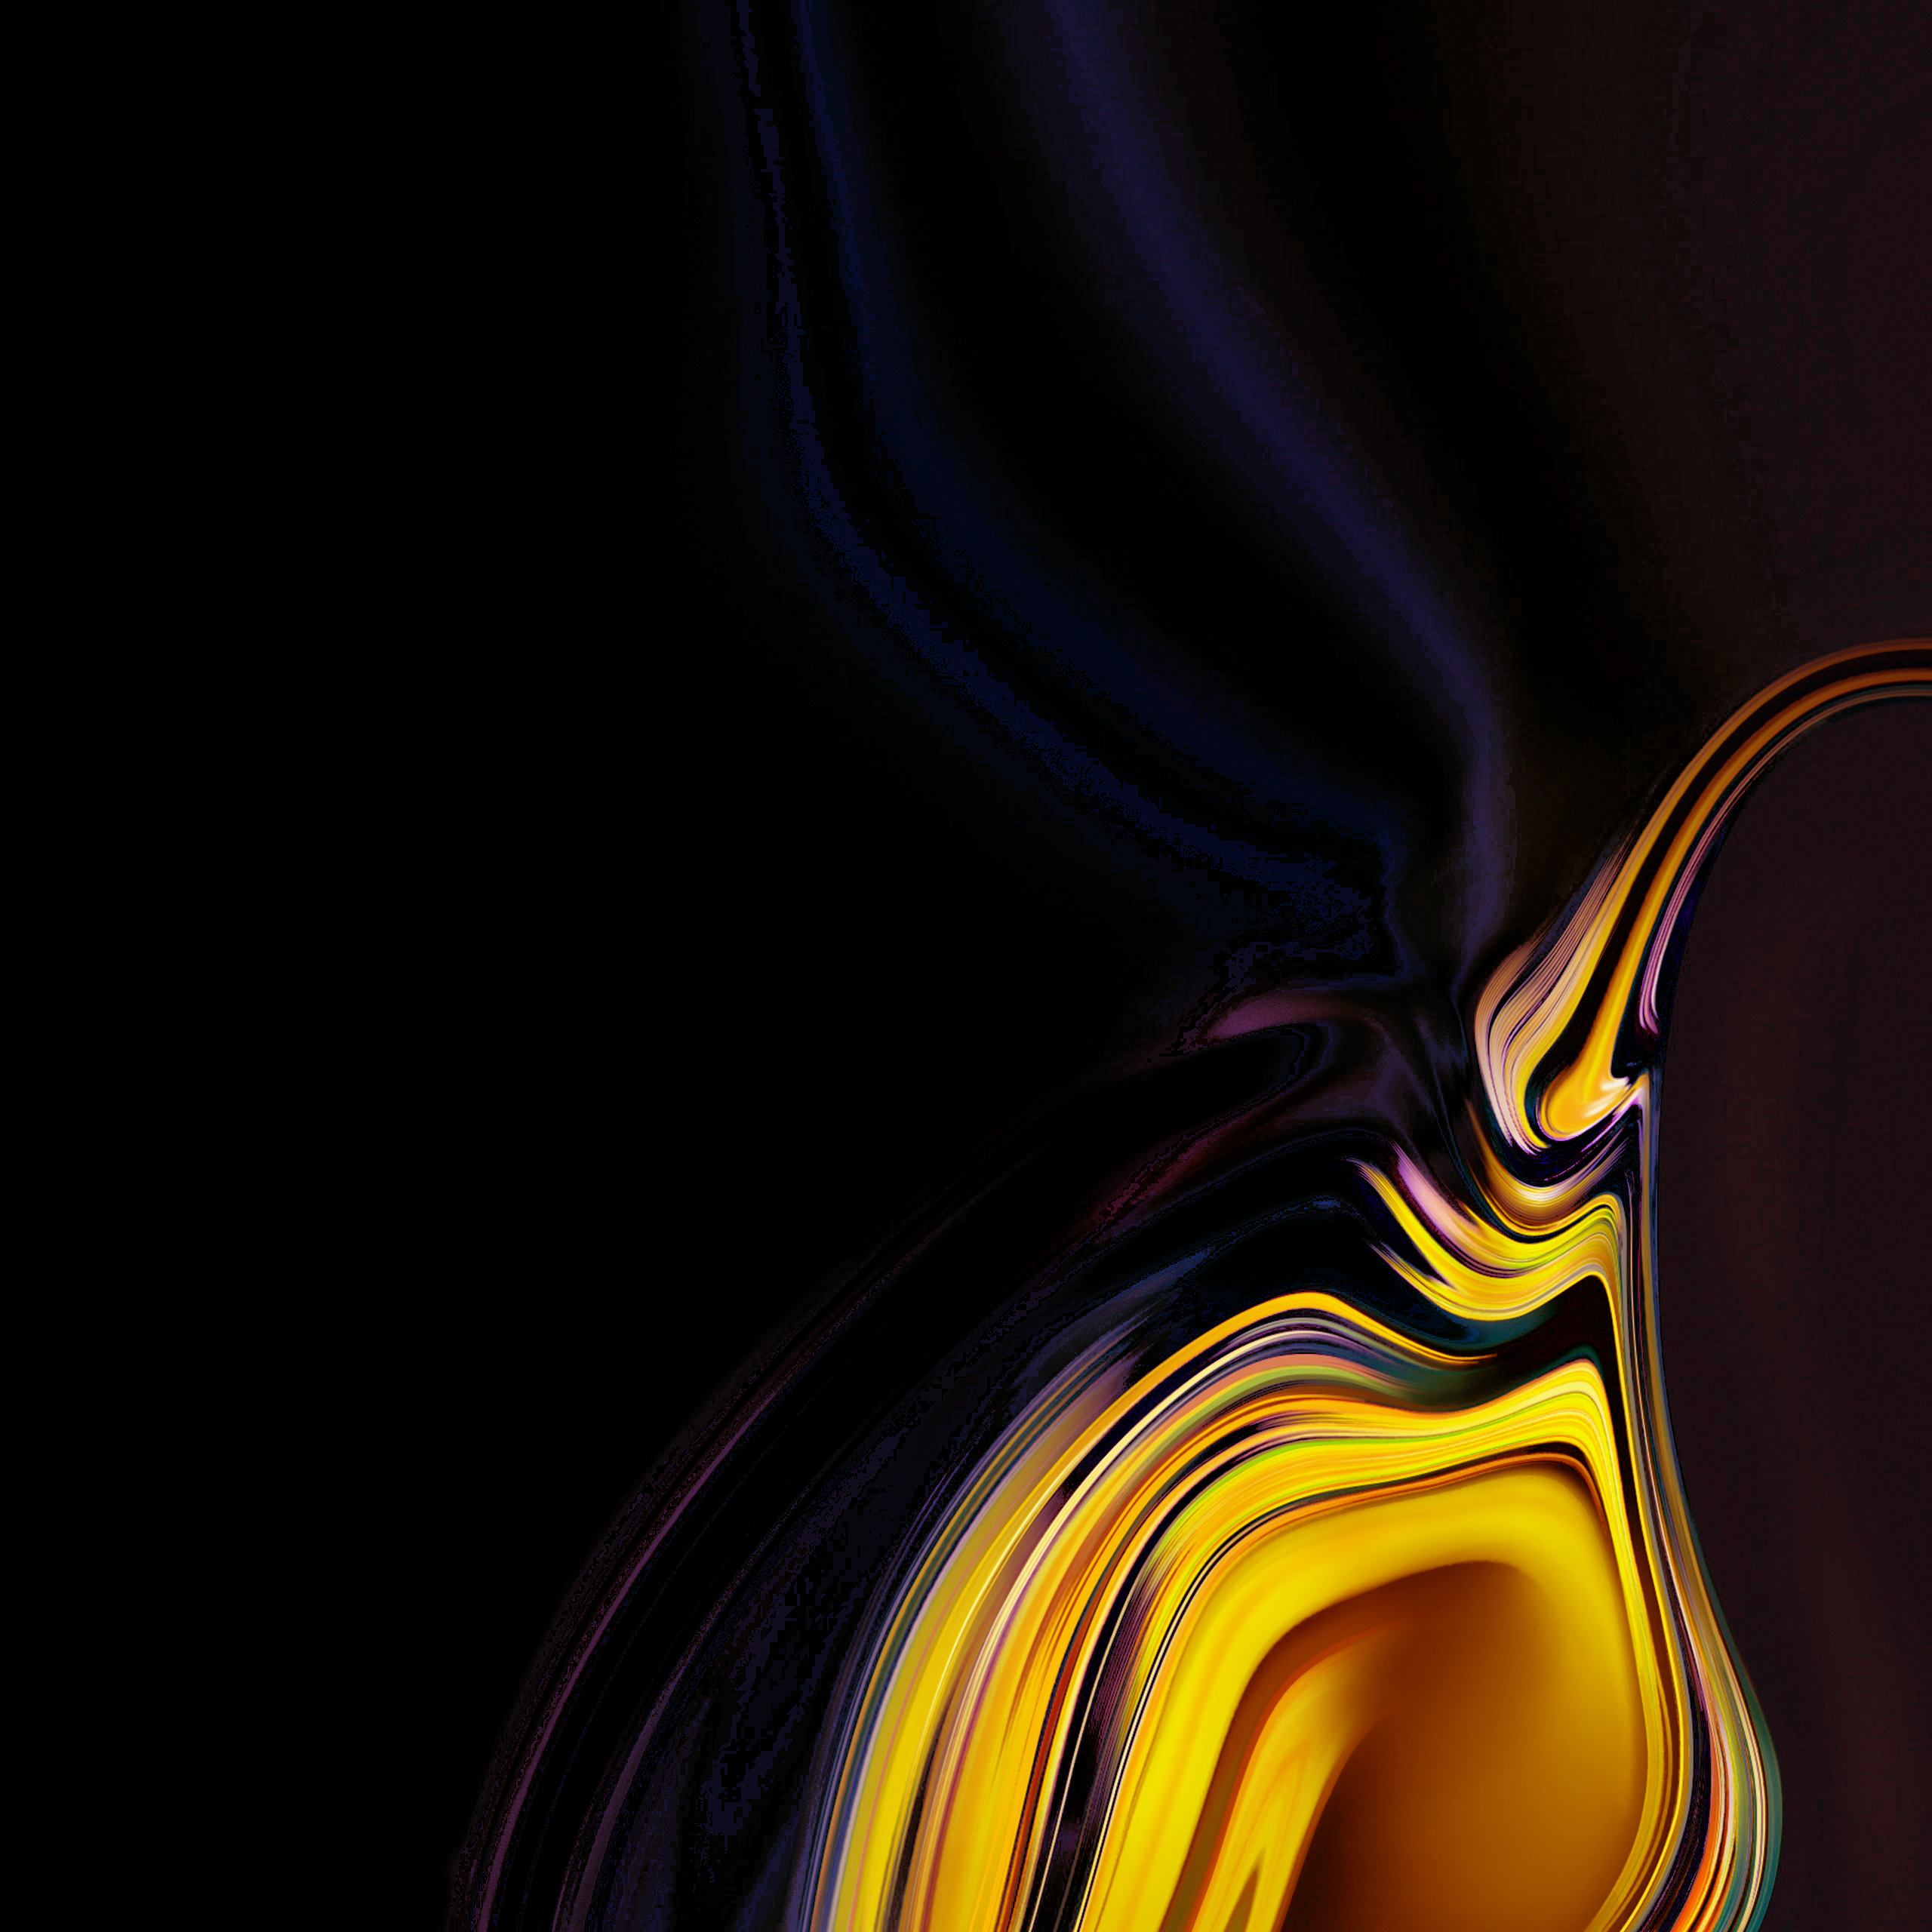 Samsung Galaxy Note 9 Stock, HD Abstract, 4k Wallpapers